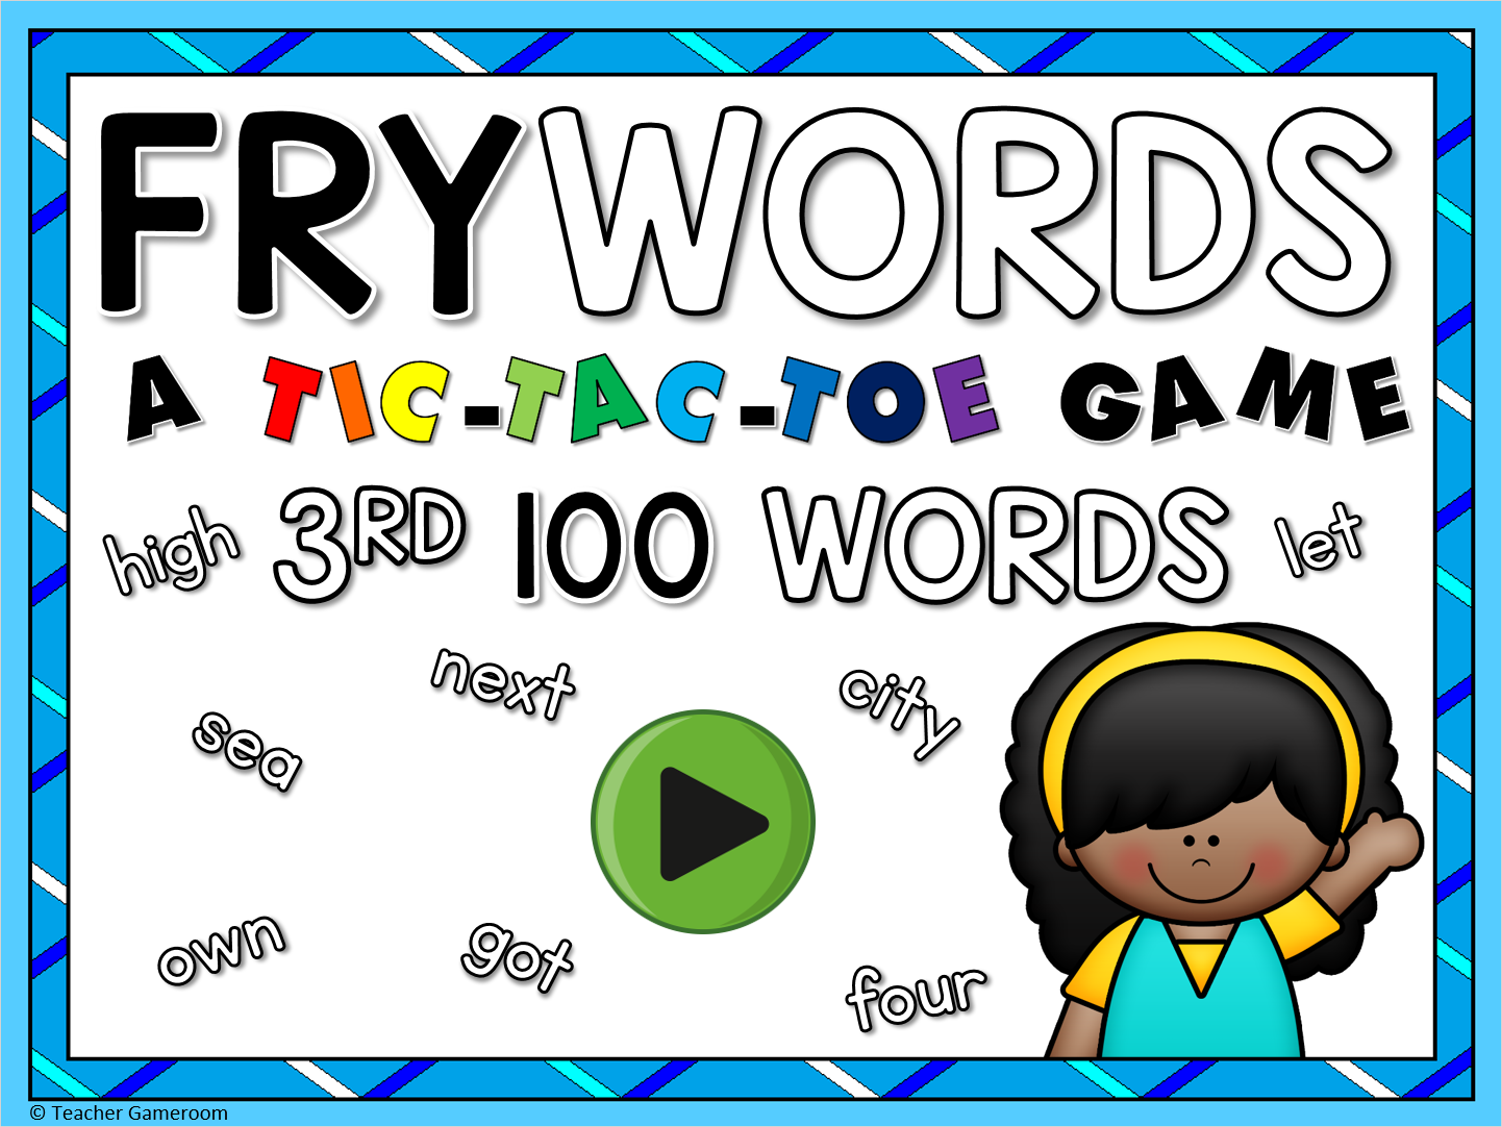 Tic-Tac-Toe Fry Words 3rd 100 Game